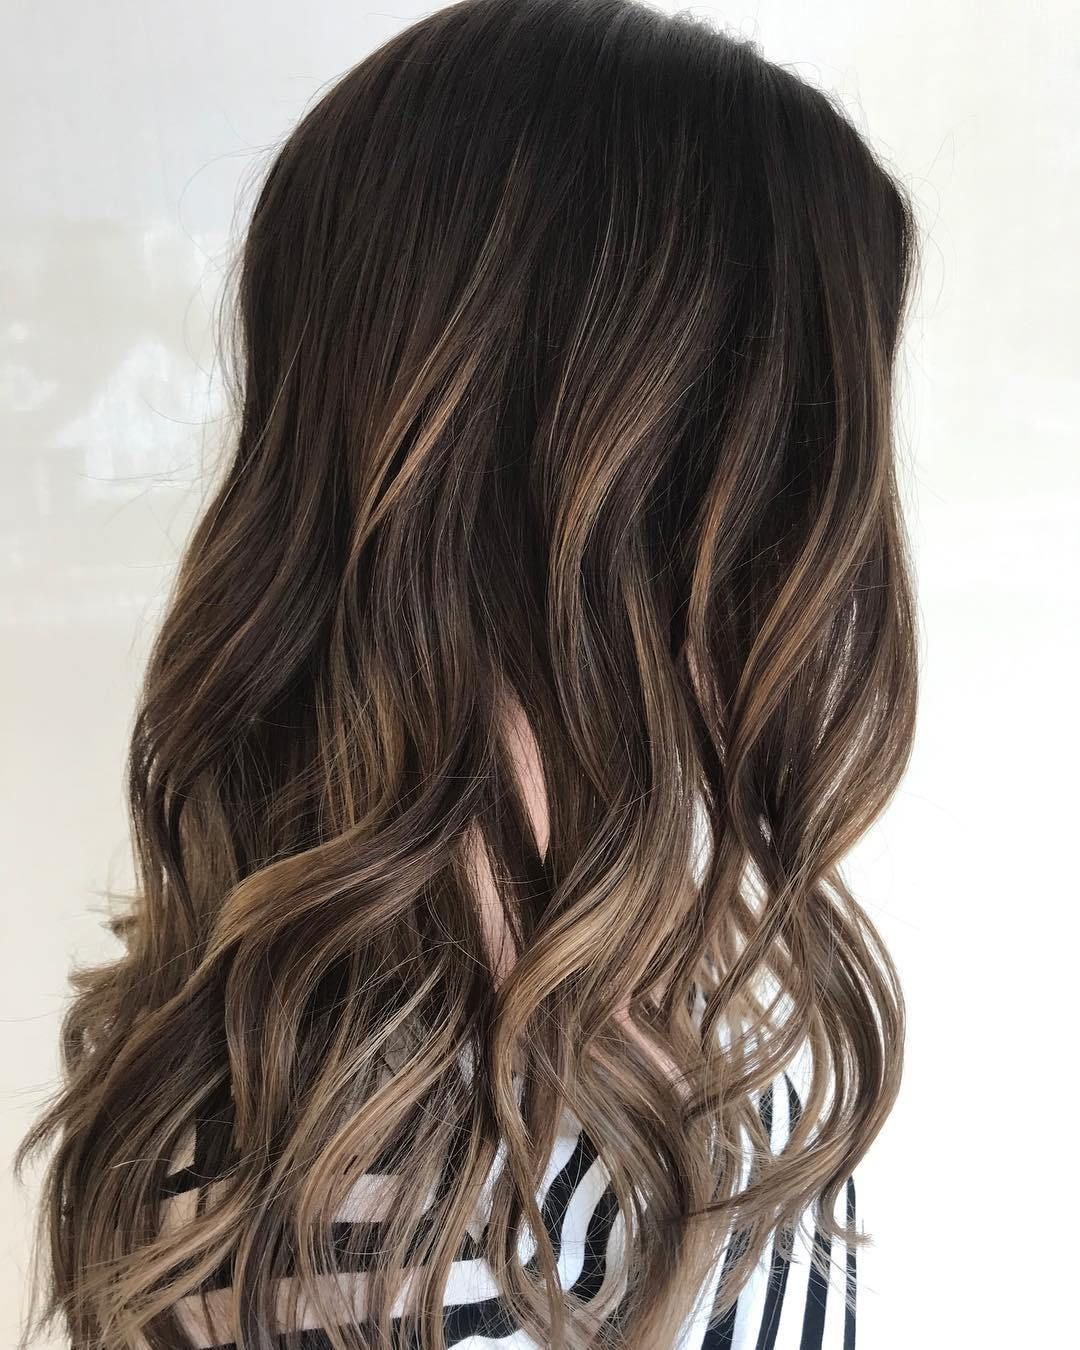 Hairstyles Featuring Dark Brown Hair With Highlights Brown